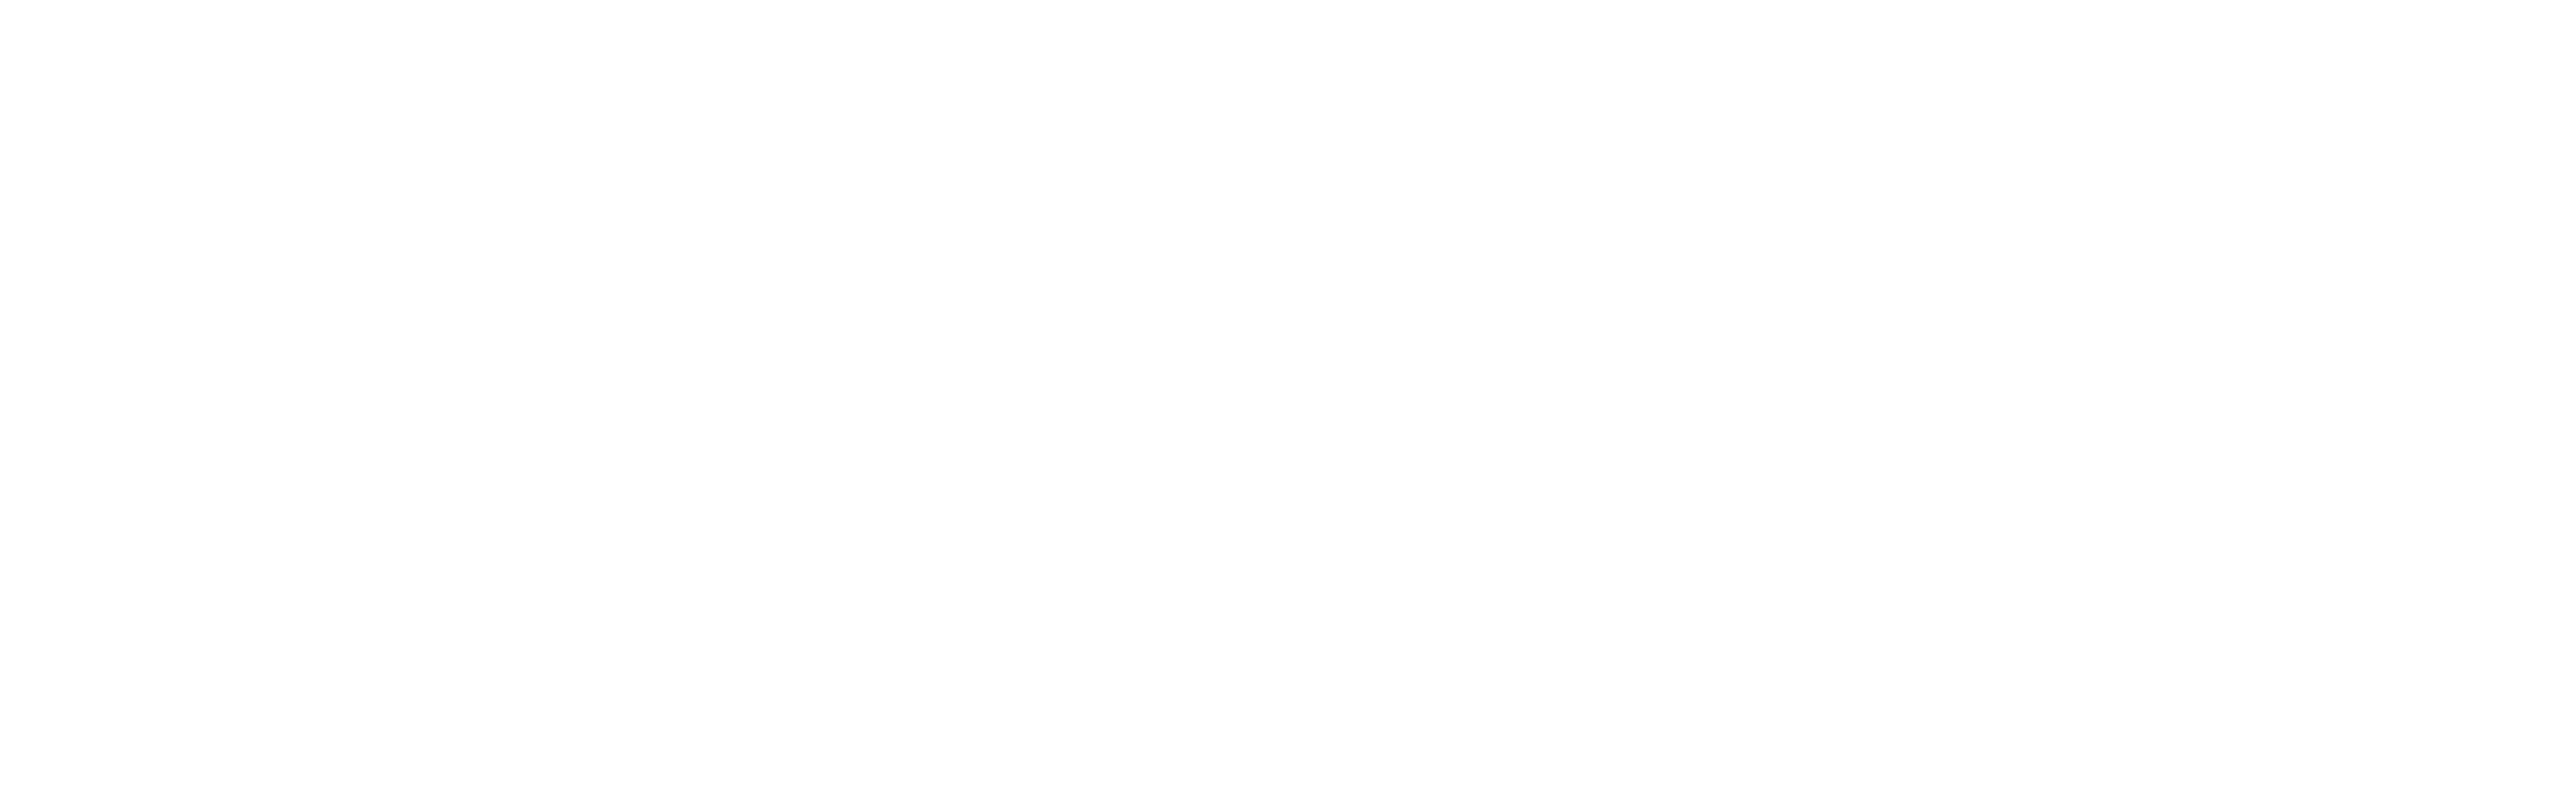 The Amplifier Group